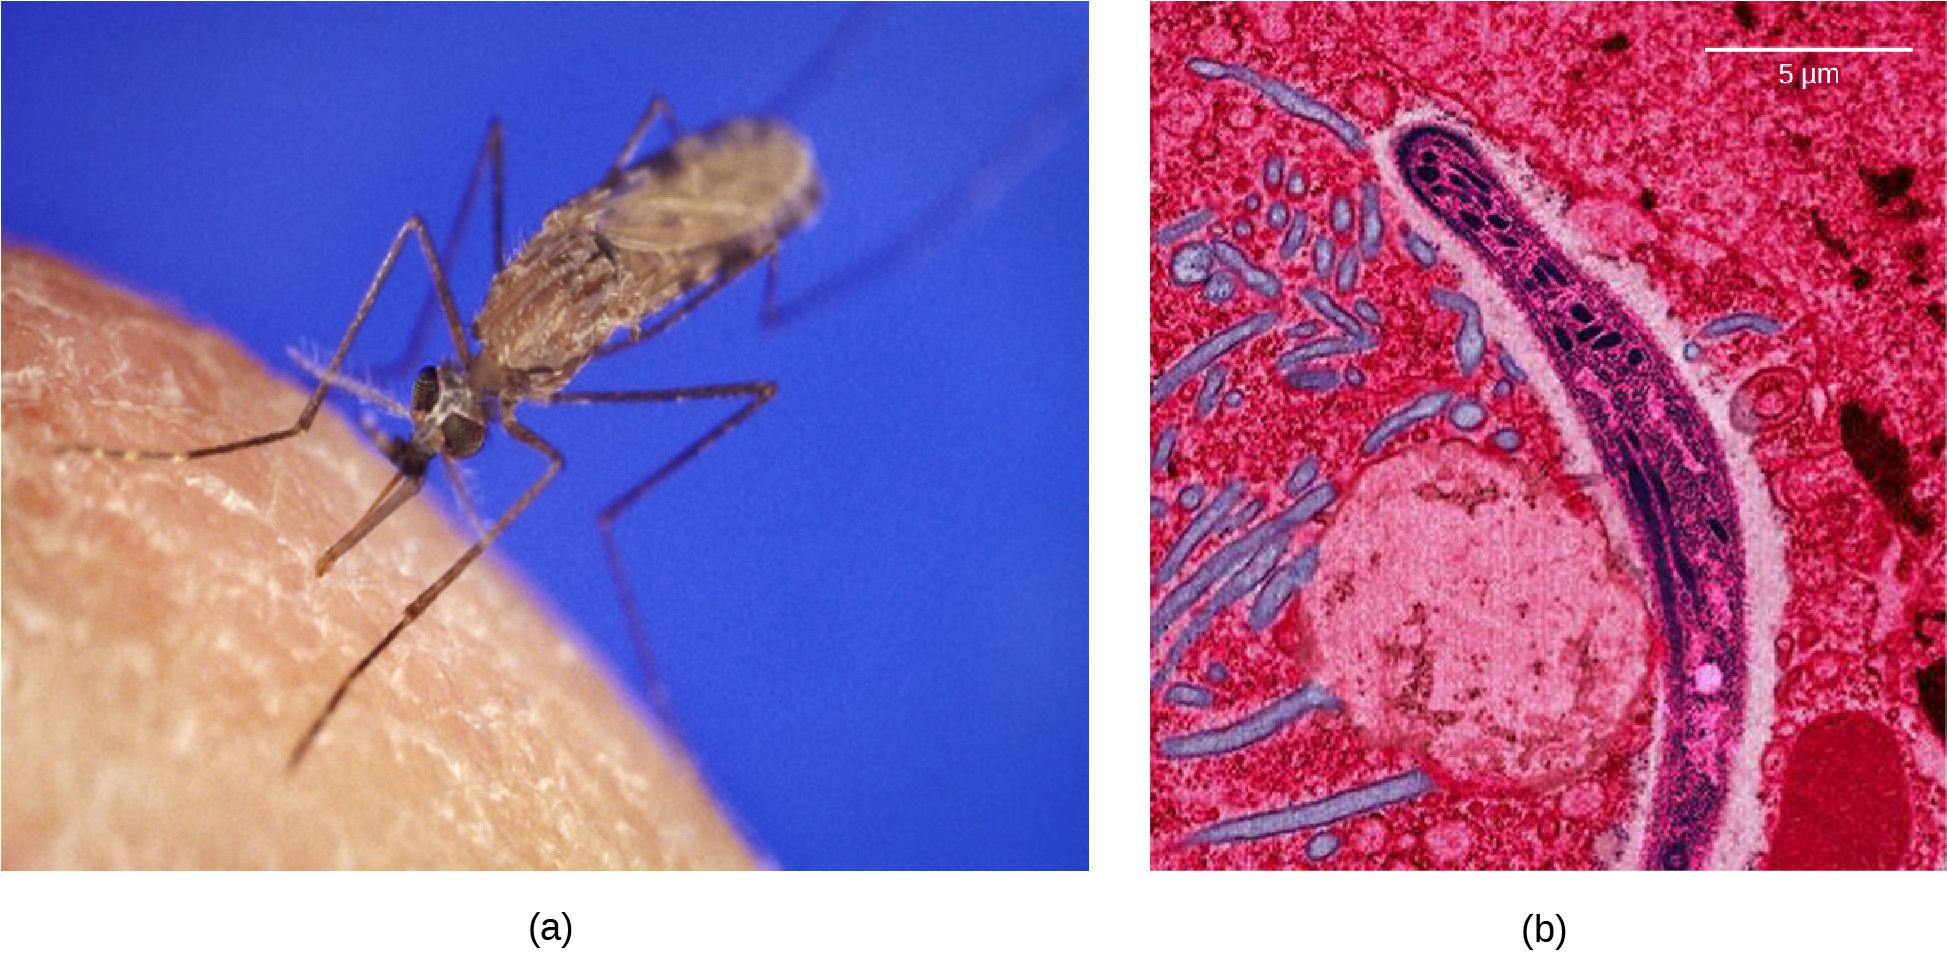 Photo a shows the Anopheles gambiae mosquito, which carries malaria.